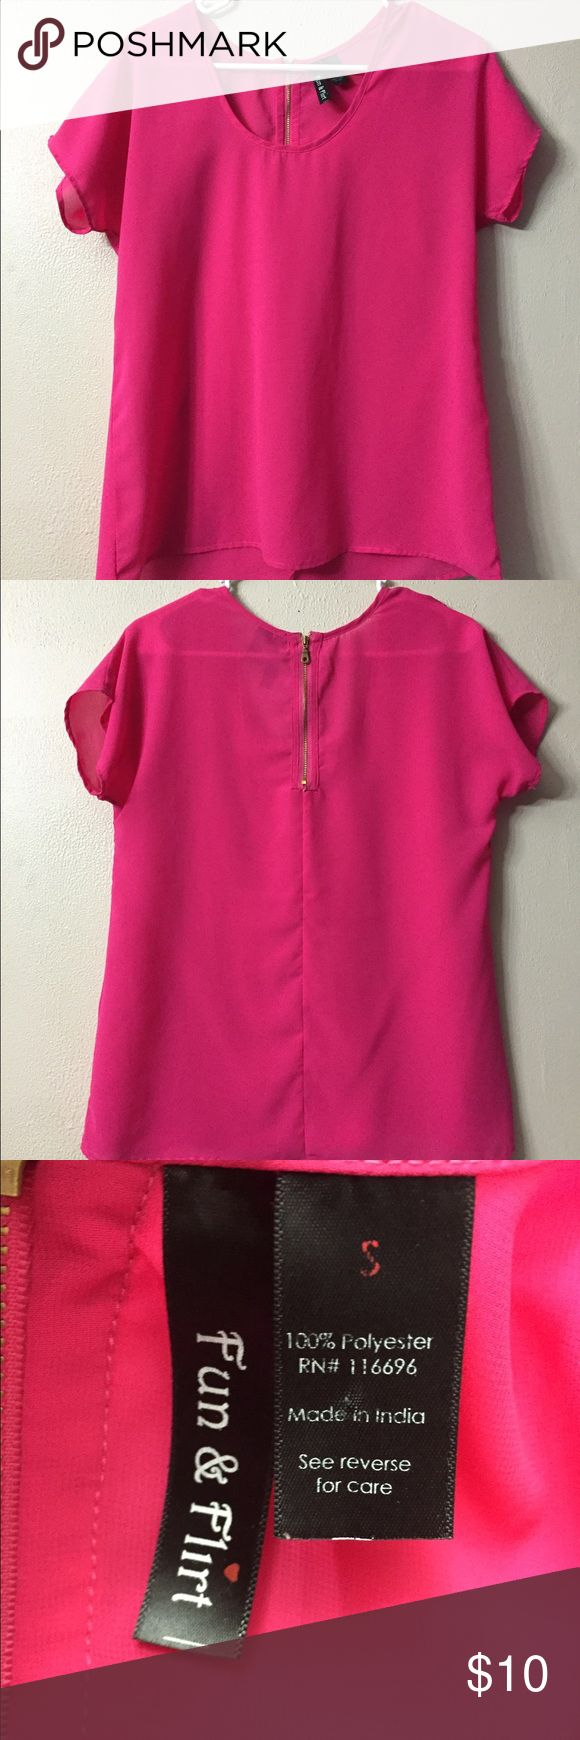 Pink Short Sleeve Top Pink short sleeve top from Fun & Flirt.  Lightweight and dressy material.  Could be used as the main piece or for layering.  Size small. Tops Blouses